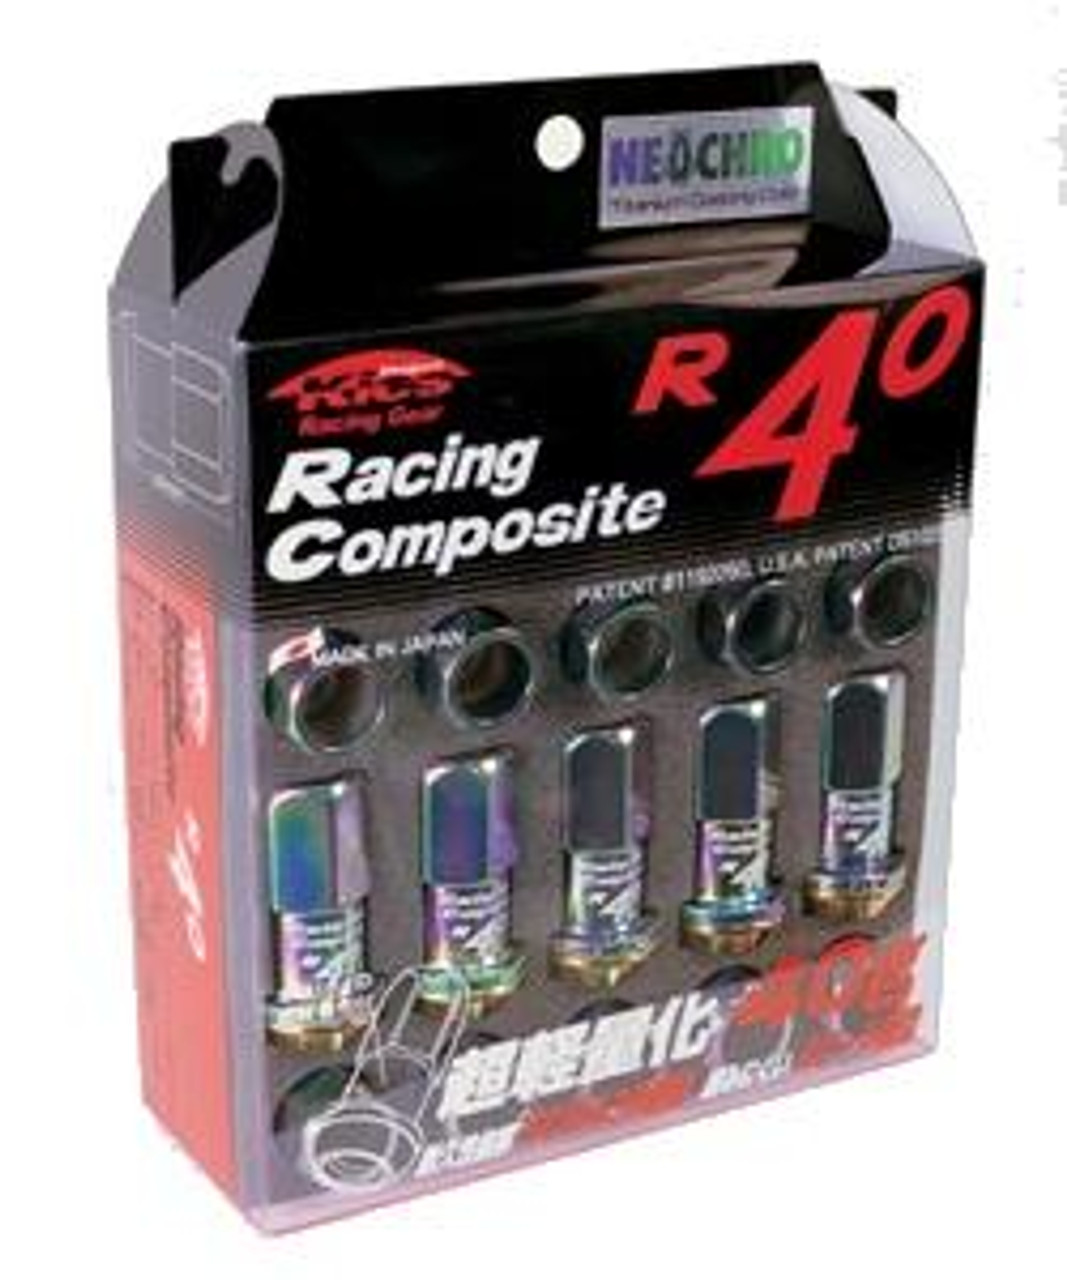 31875N  -Project Kics R40 Lug Nuts NeoChrome